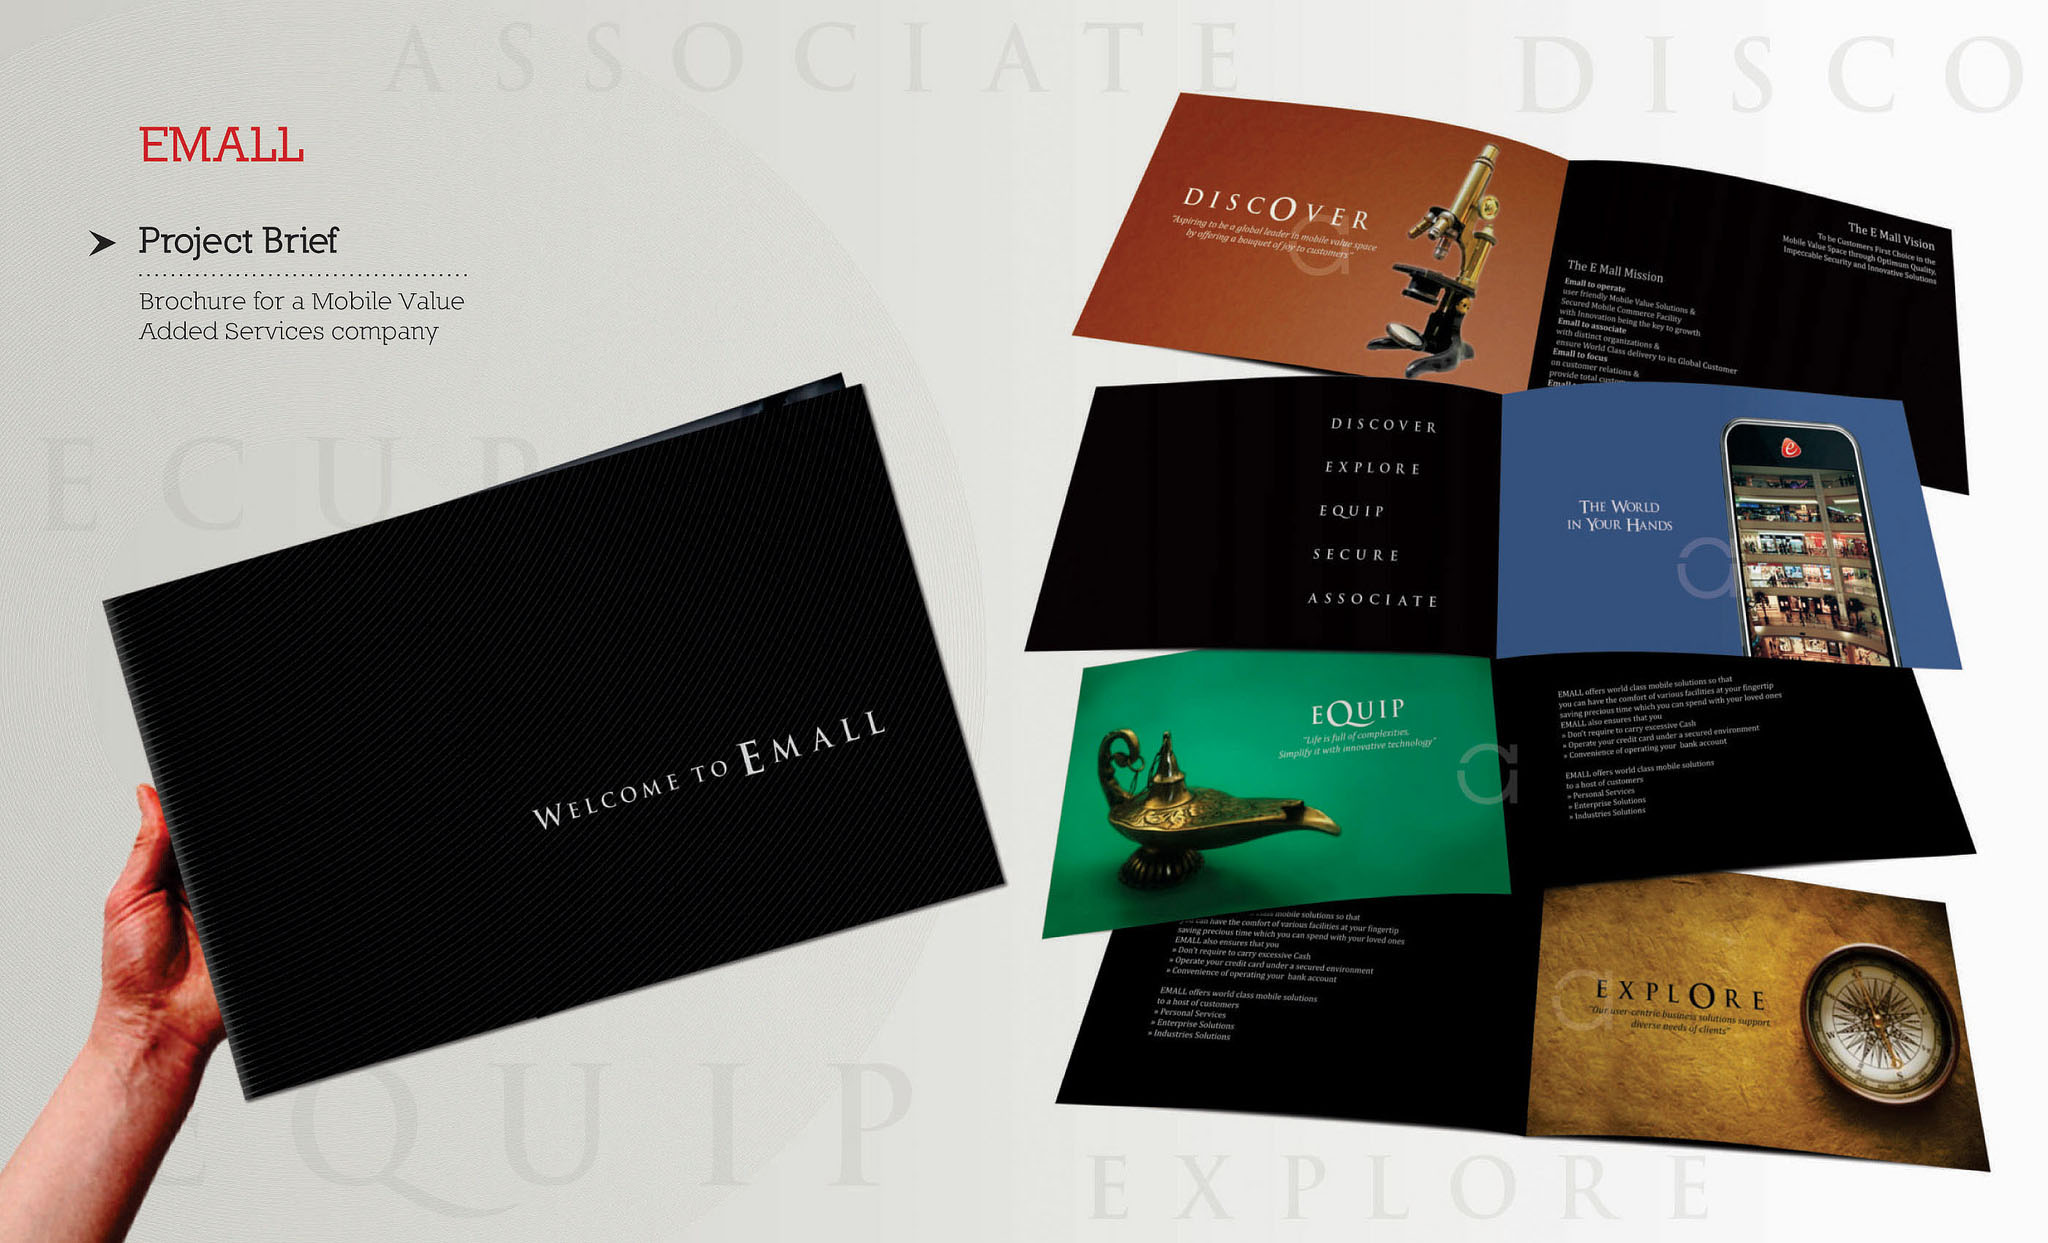 brochure design ideas - 20 new beautiful corporate brochure design ideas examples